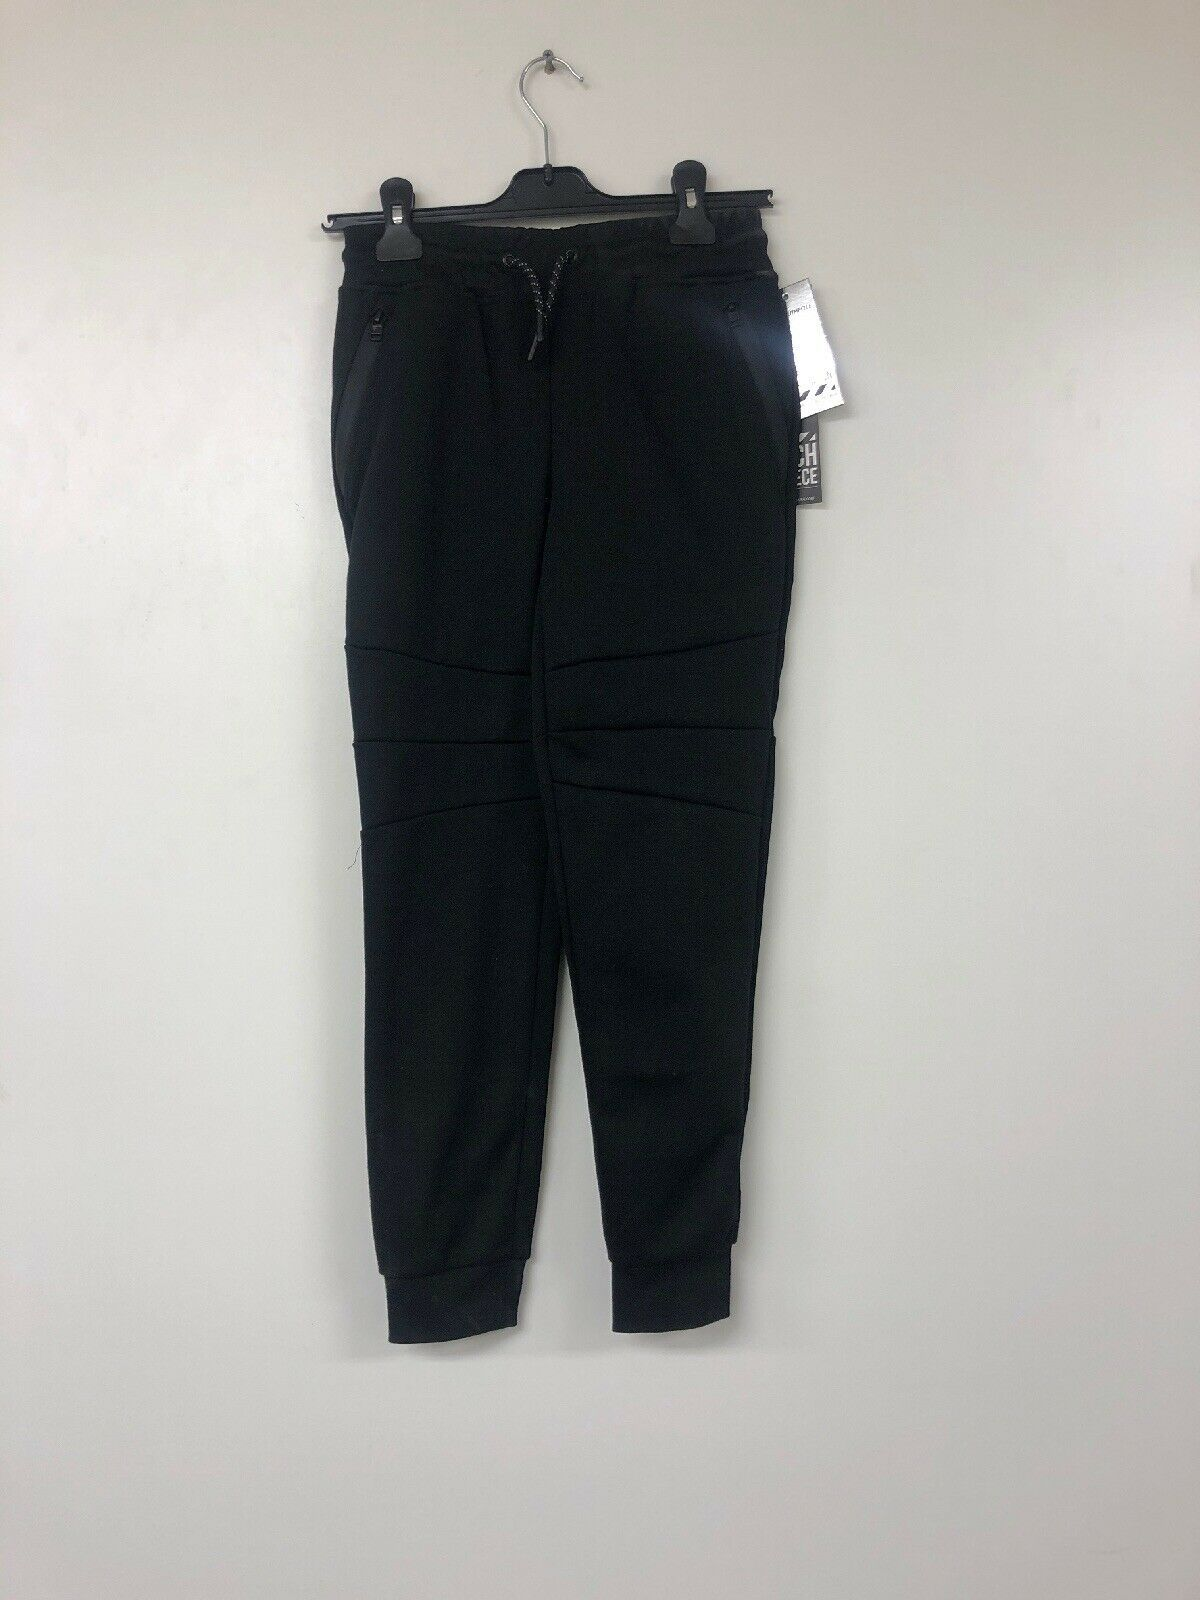 Primary image for Southpole Boys Jogger Sweatpant, Black . Small